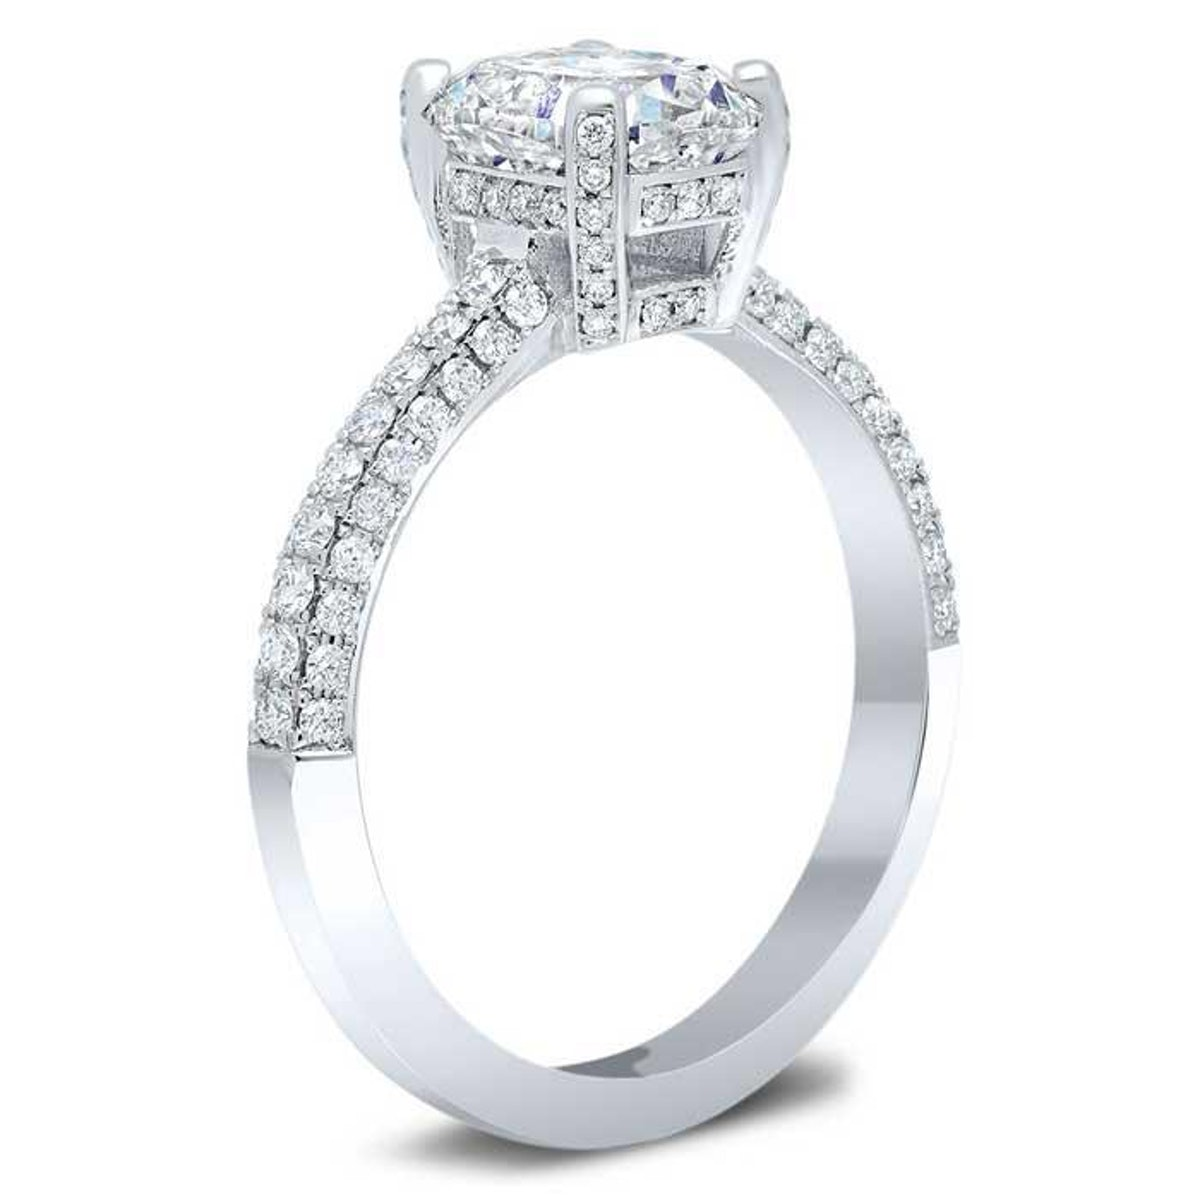 deBebians' 3 sided pave engagement ring with a pave basket and hidden halo.